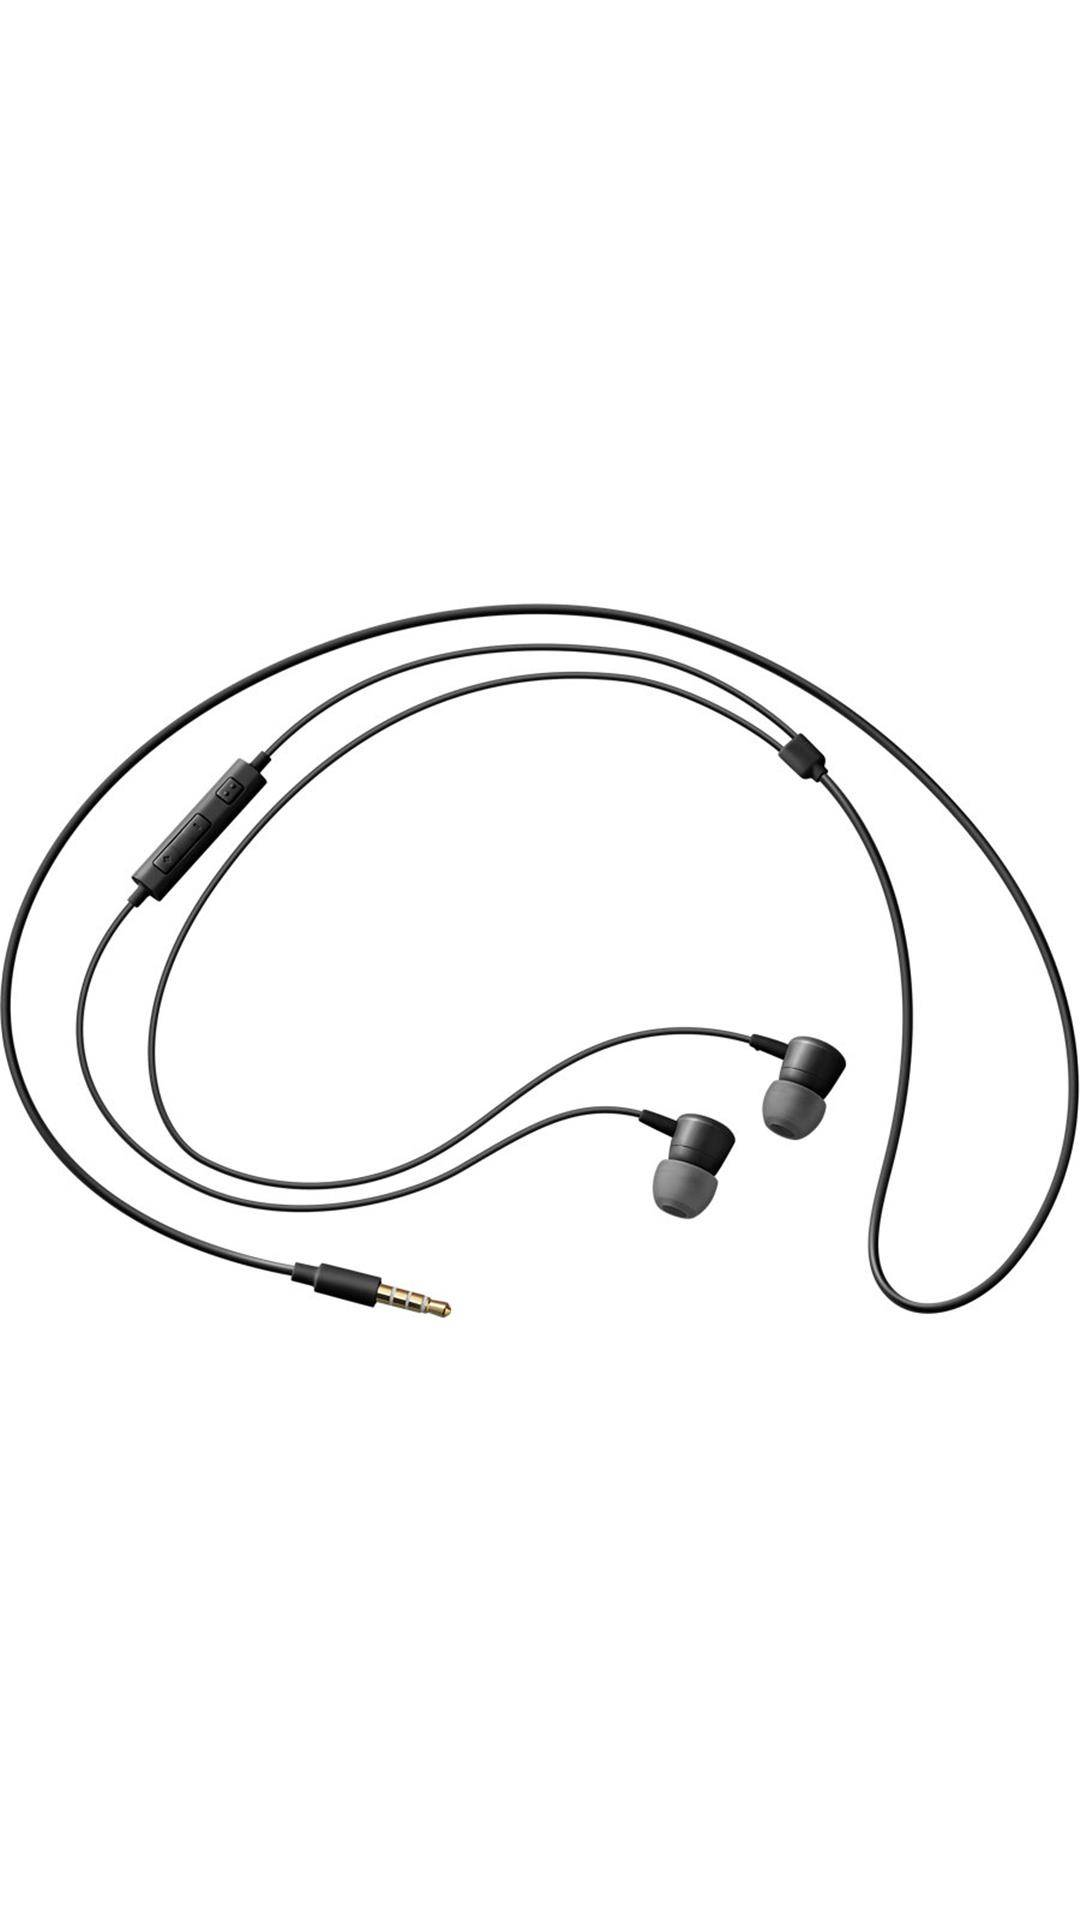 samsung wired headset hs1303  photos  images and